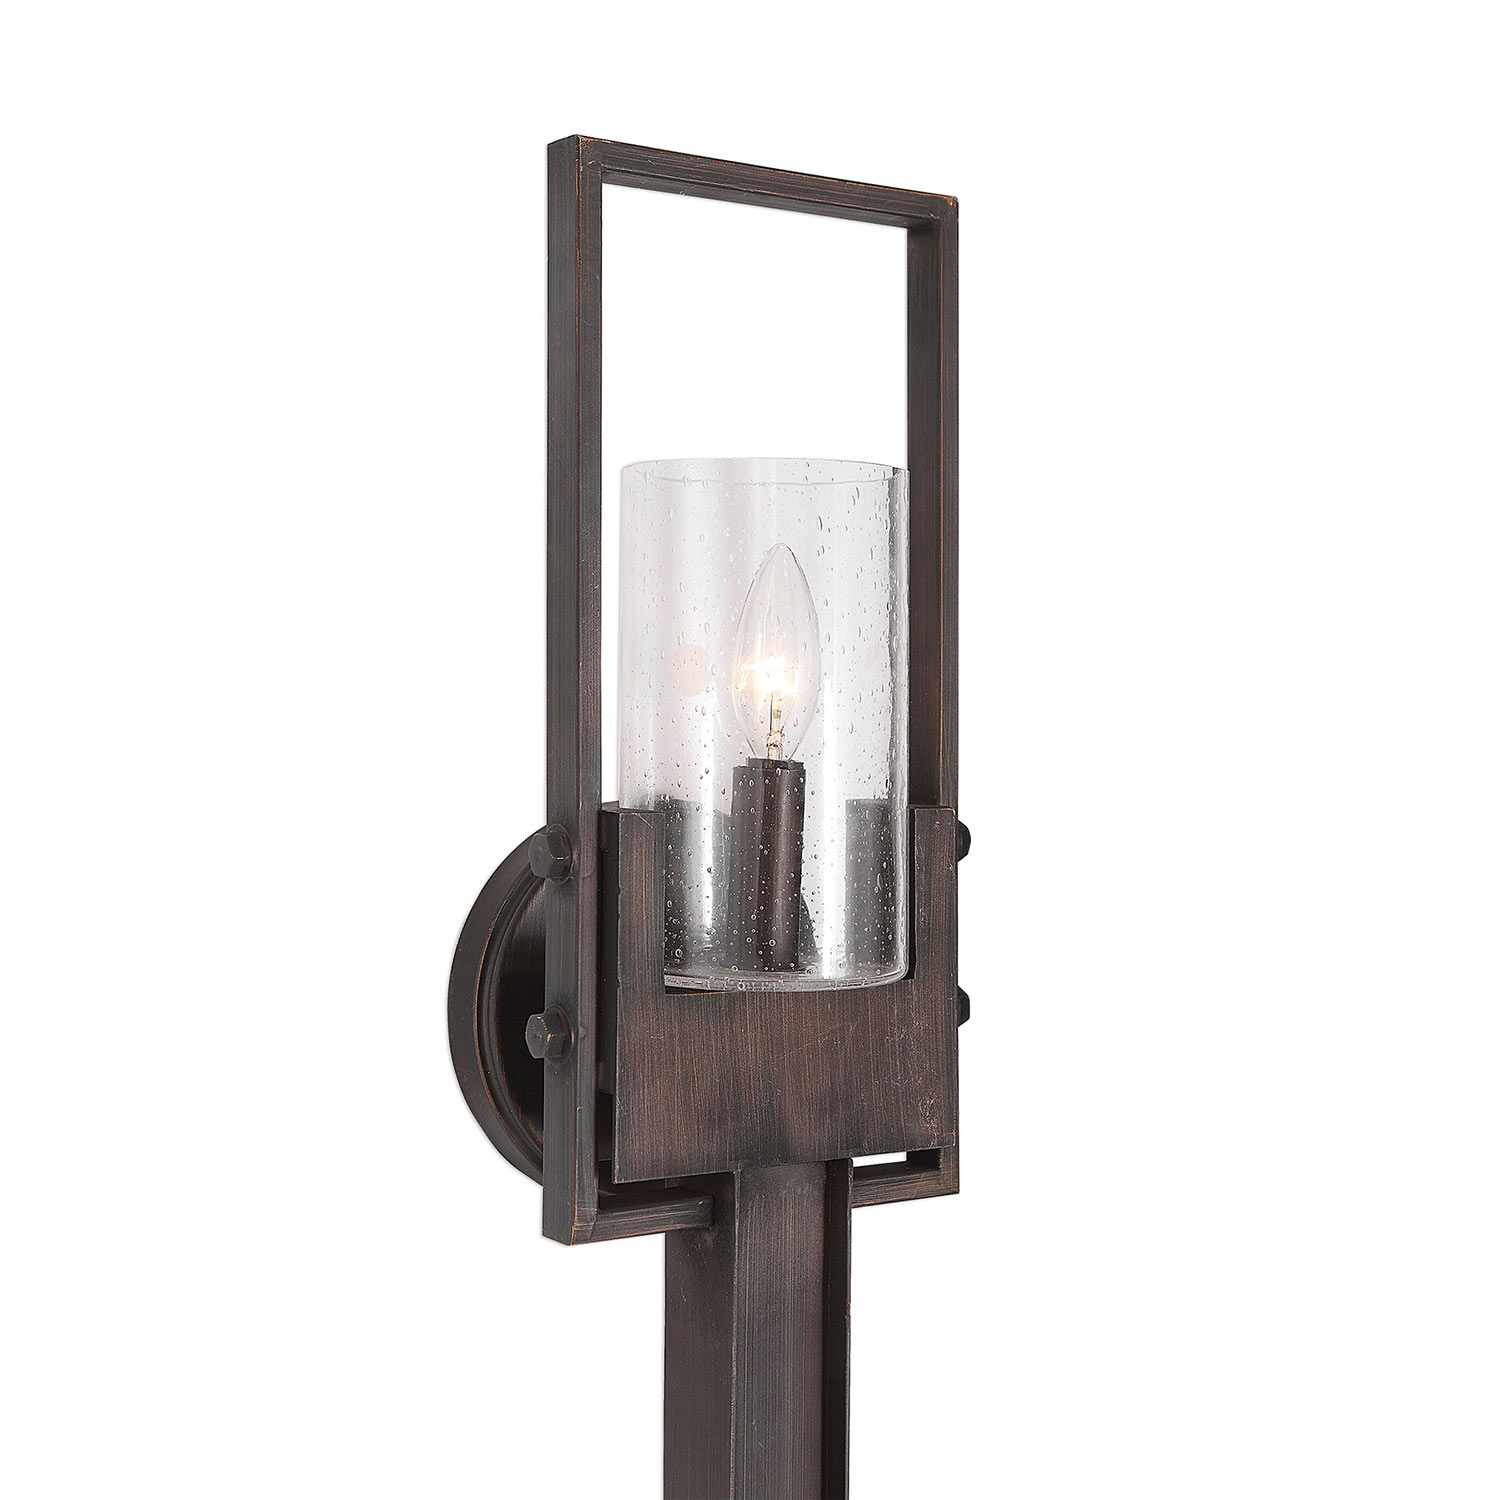 Uttermost Pinecroft Light Sconce - Rustic